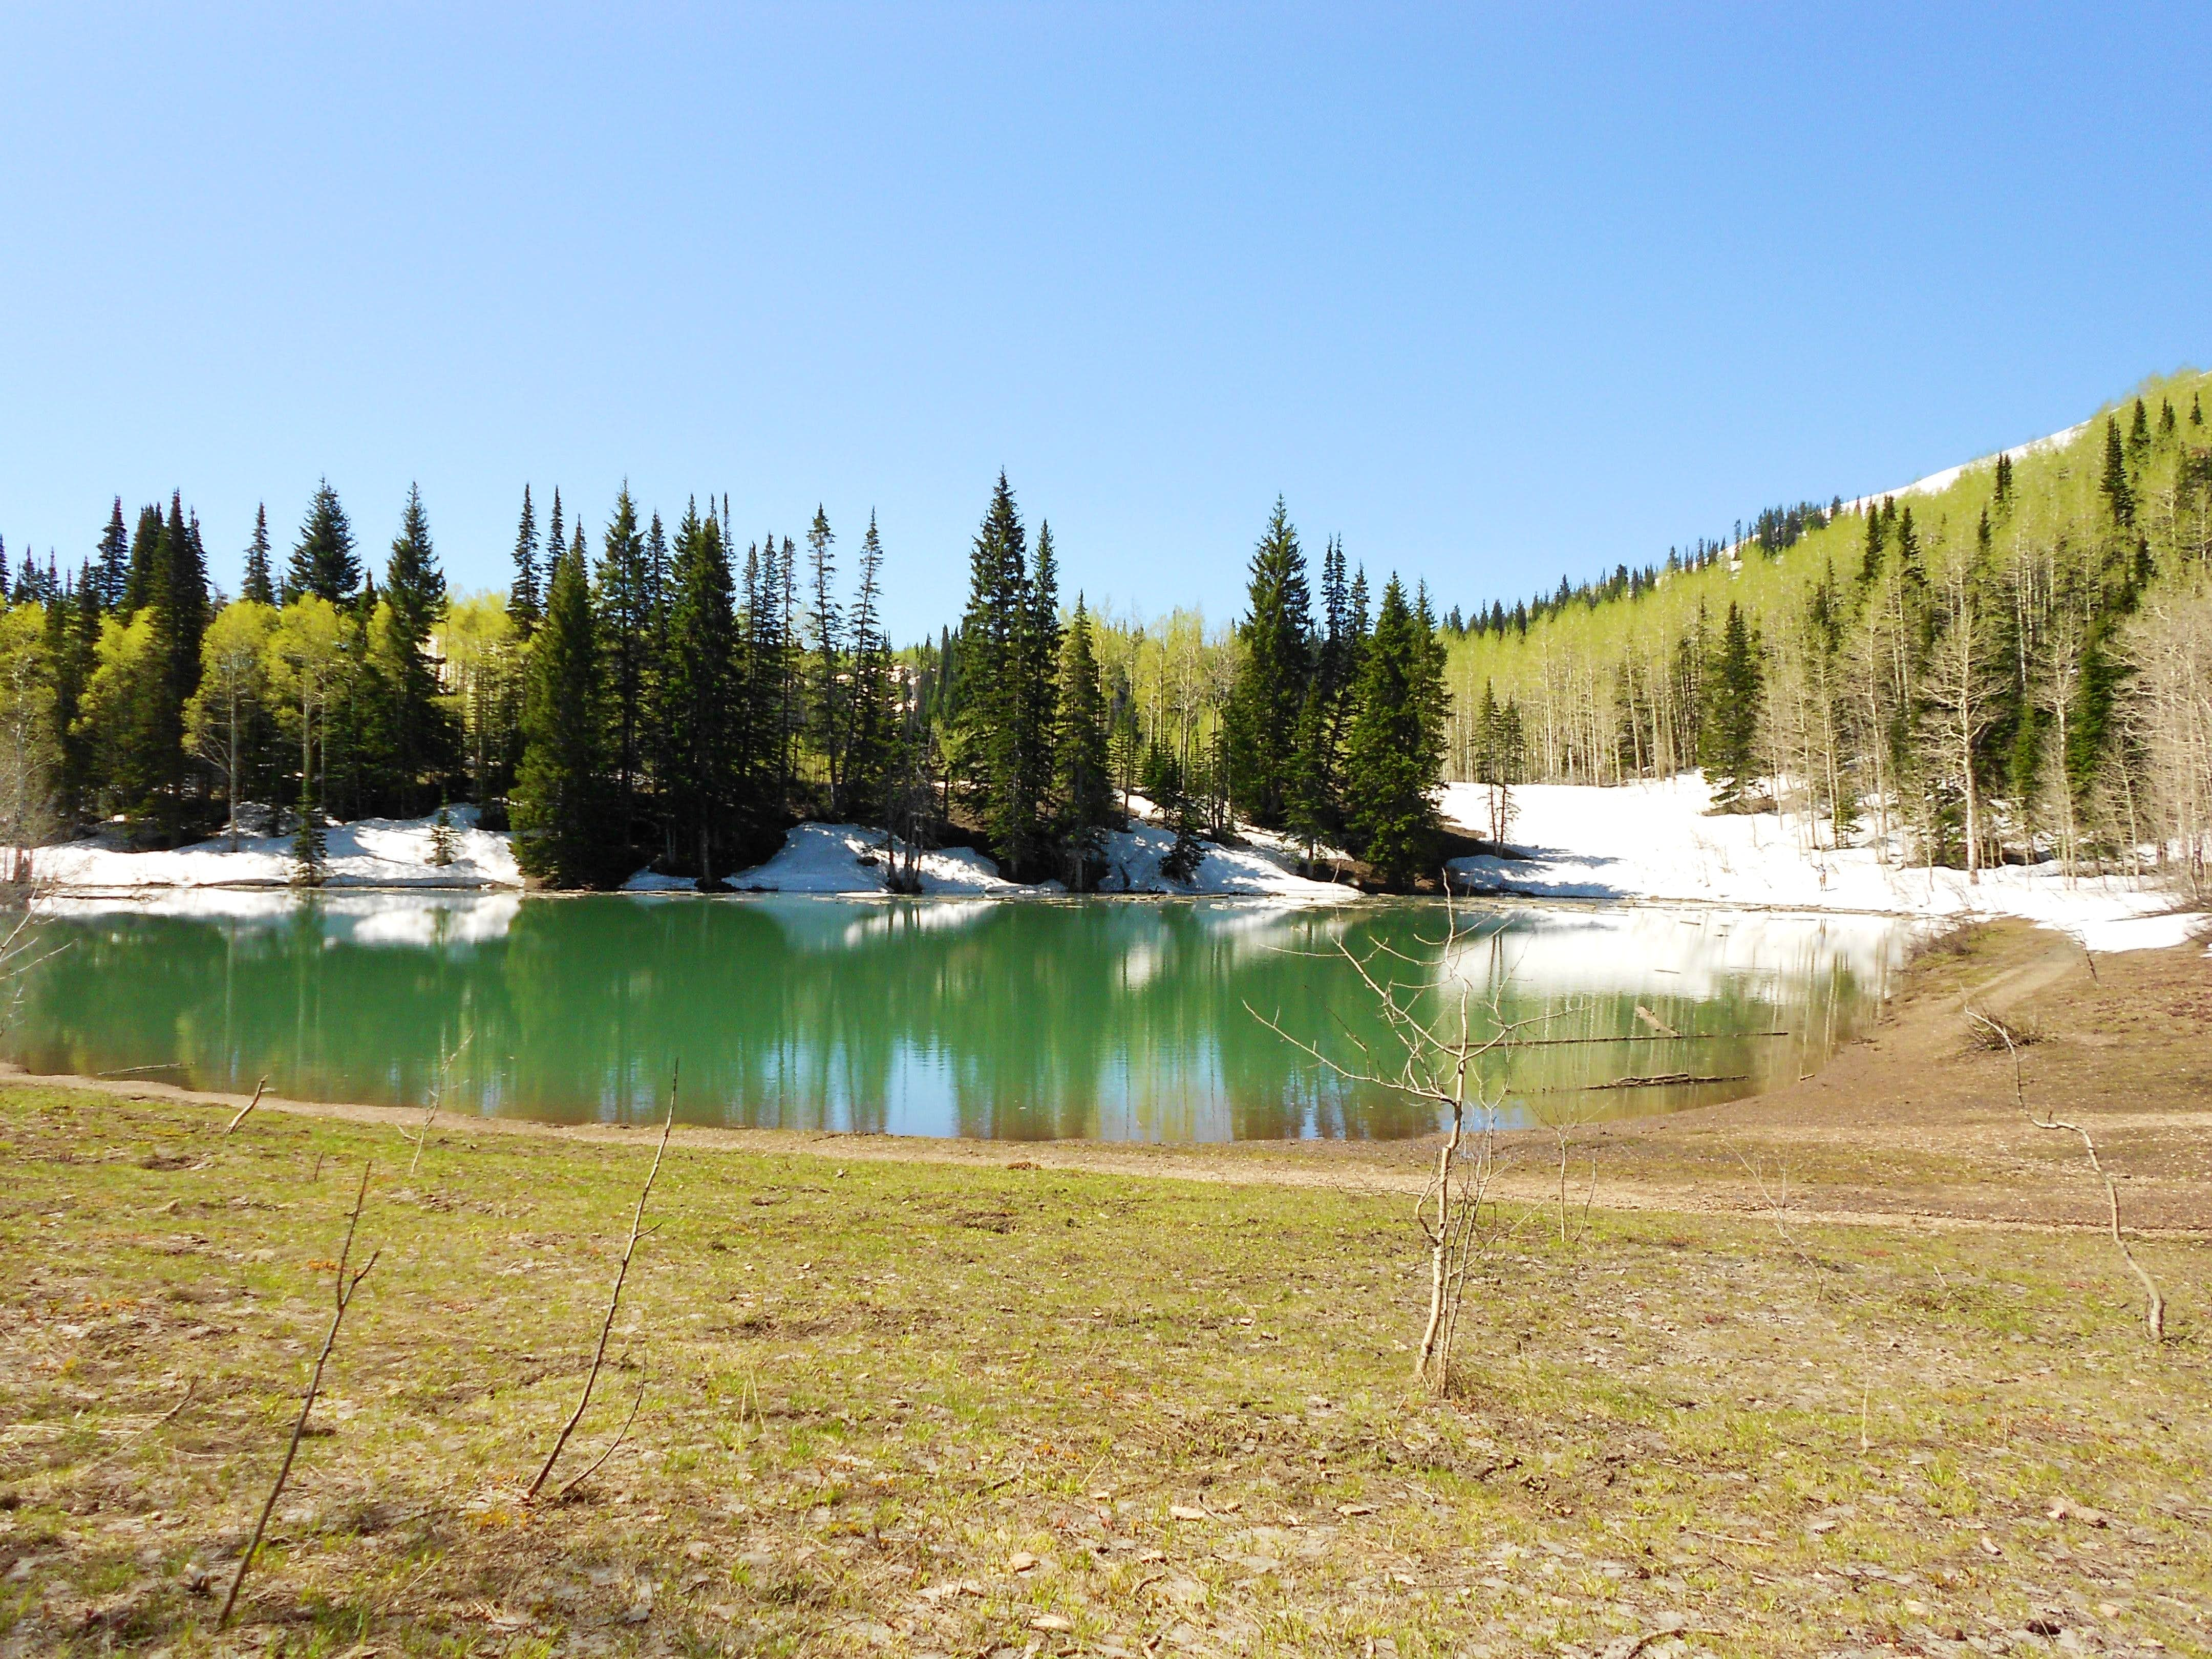 Dayhike to Dog Lake